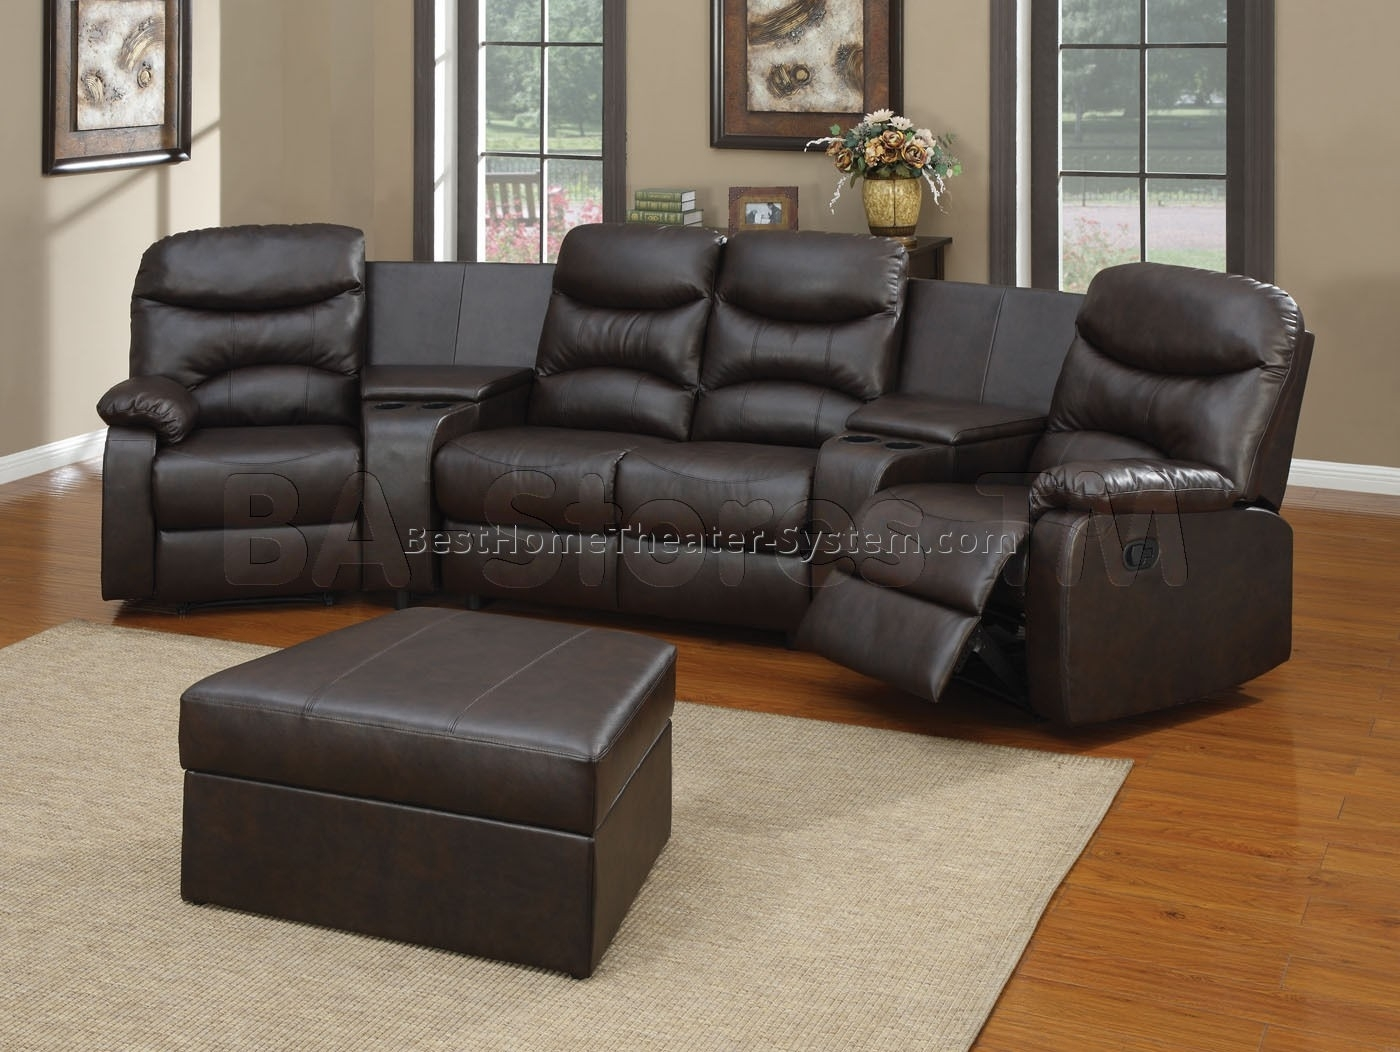 Awesome Sectional Sofa Theater Style – Mediasupload Within Kanes Sectional Sofas (View 5 of 10)